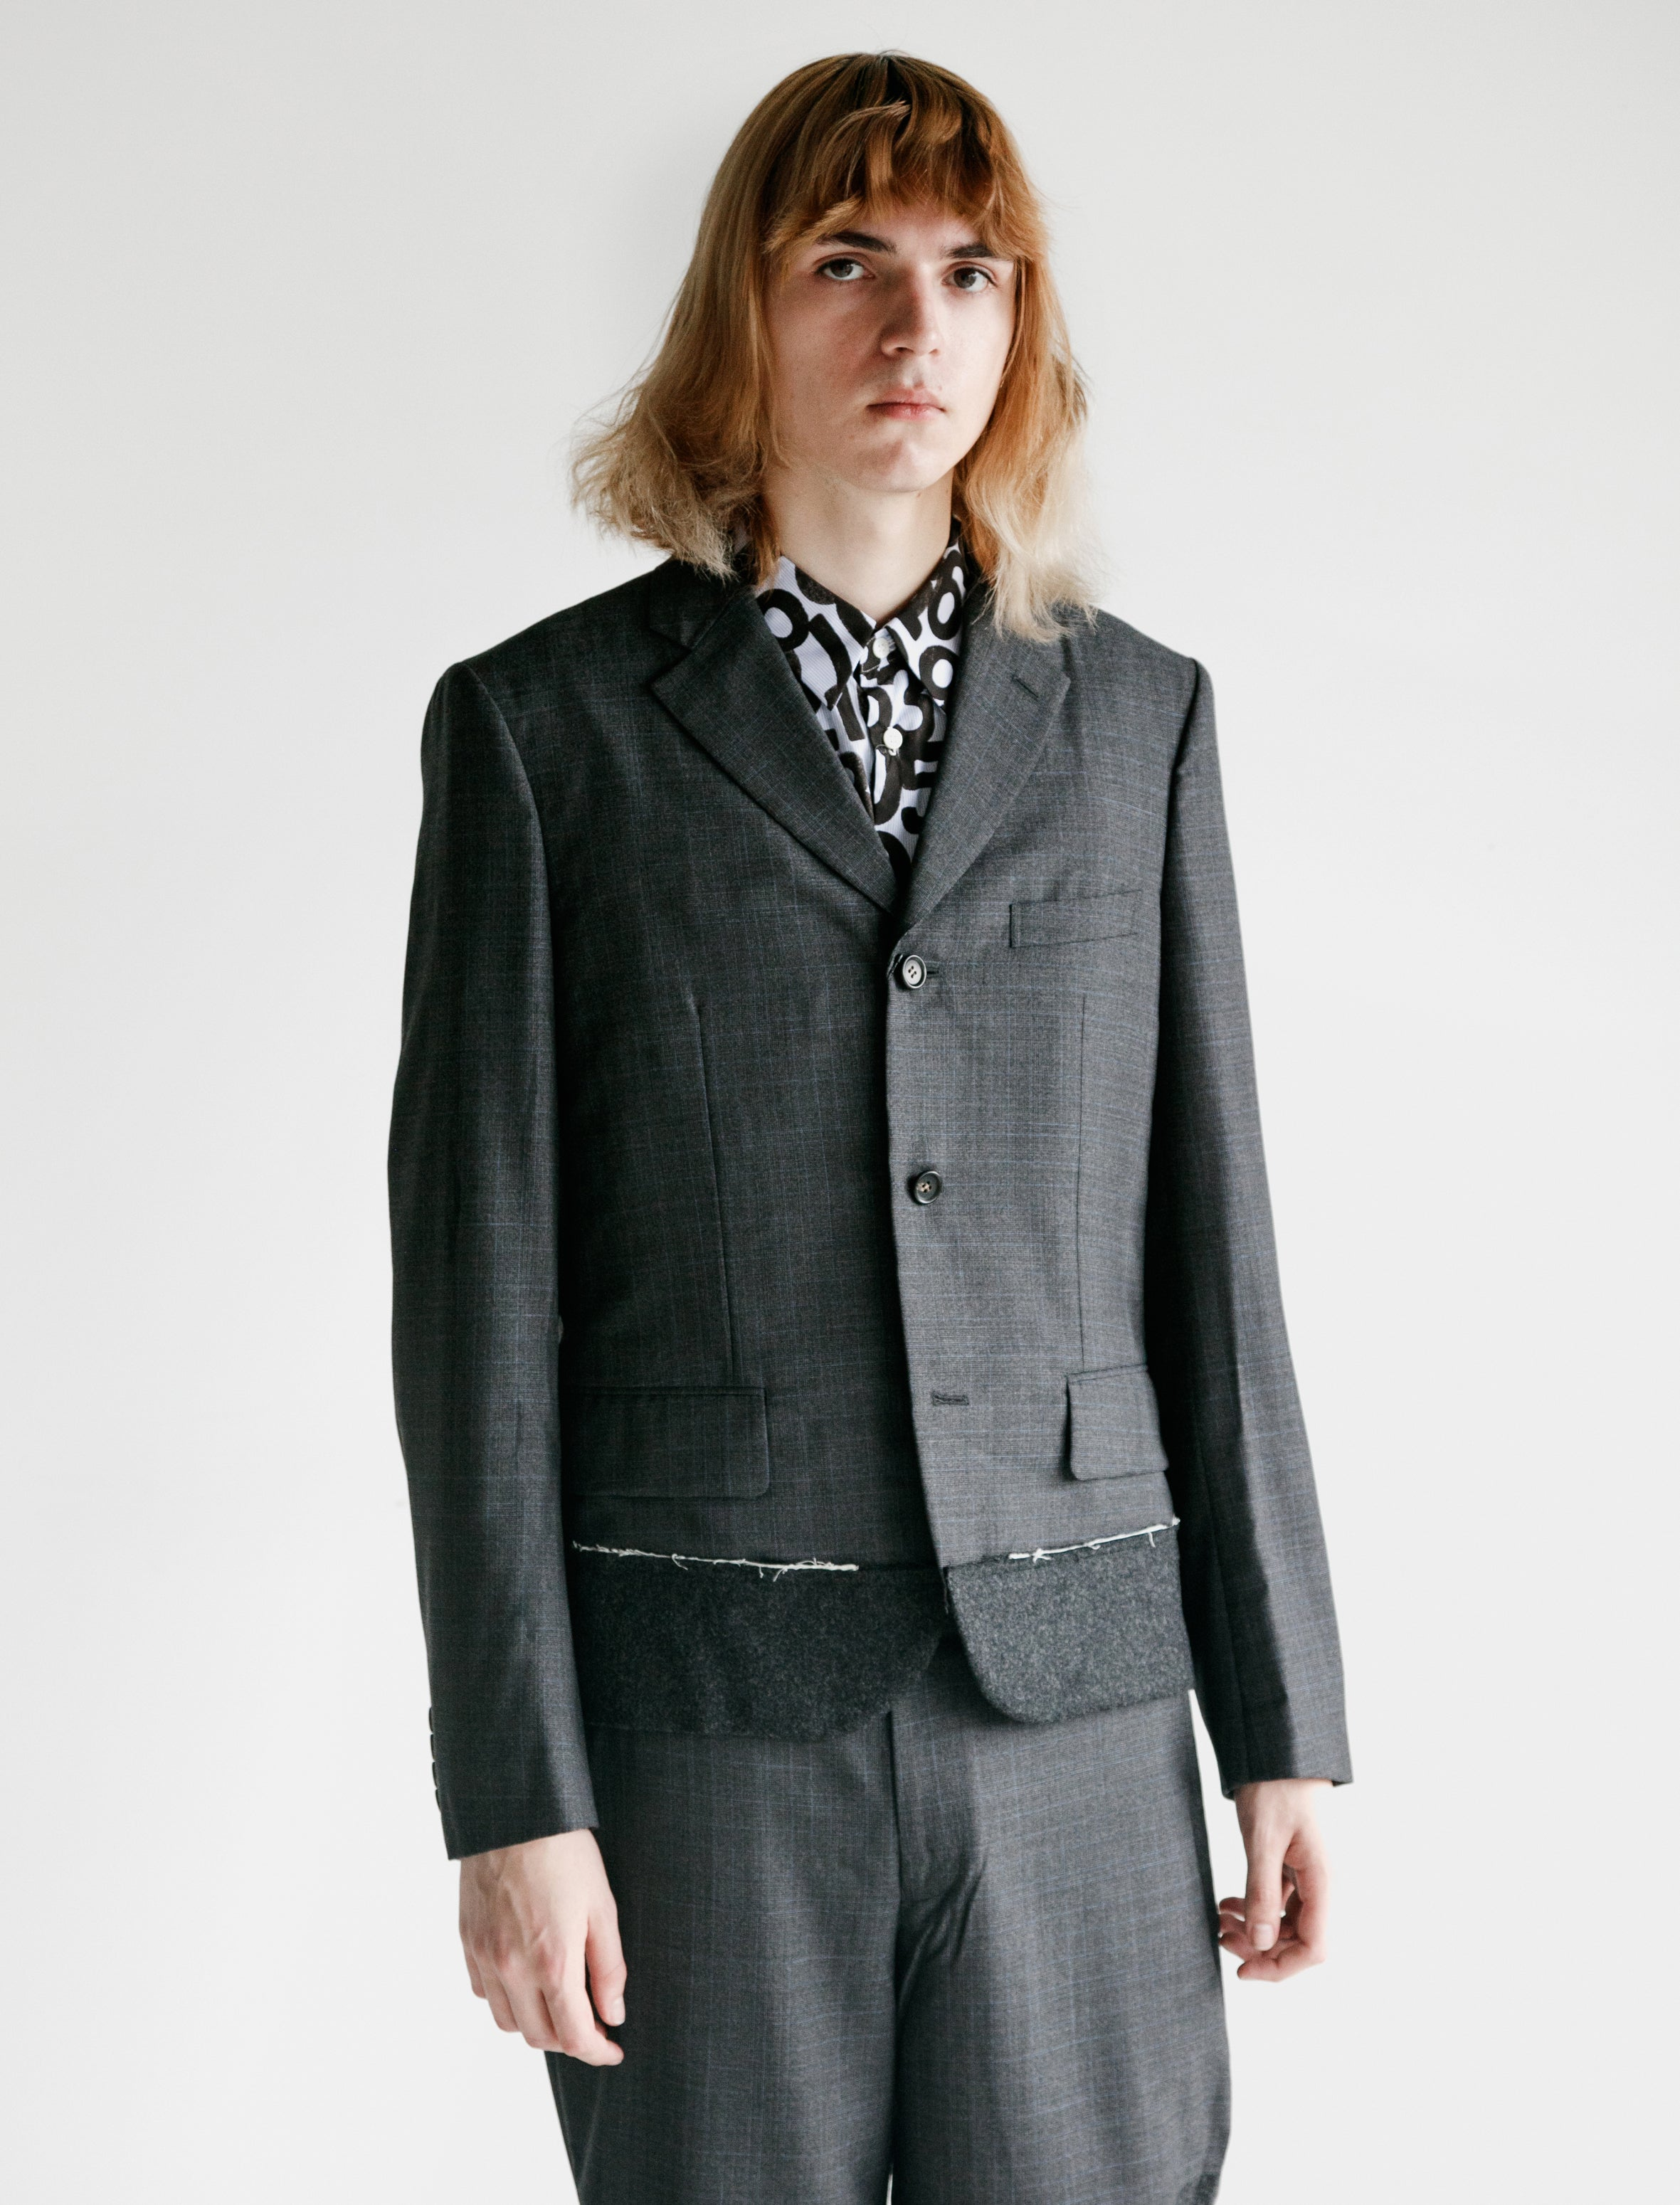 Comme des Garcons Homme Deux Wool Tropical Check Flannel Jacket Charcoal